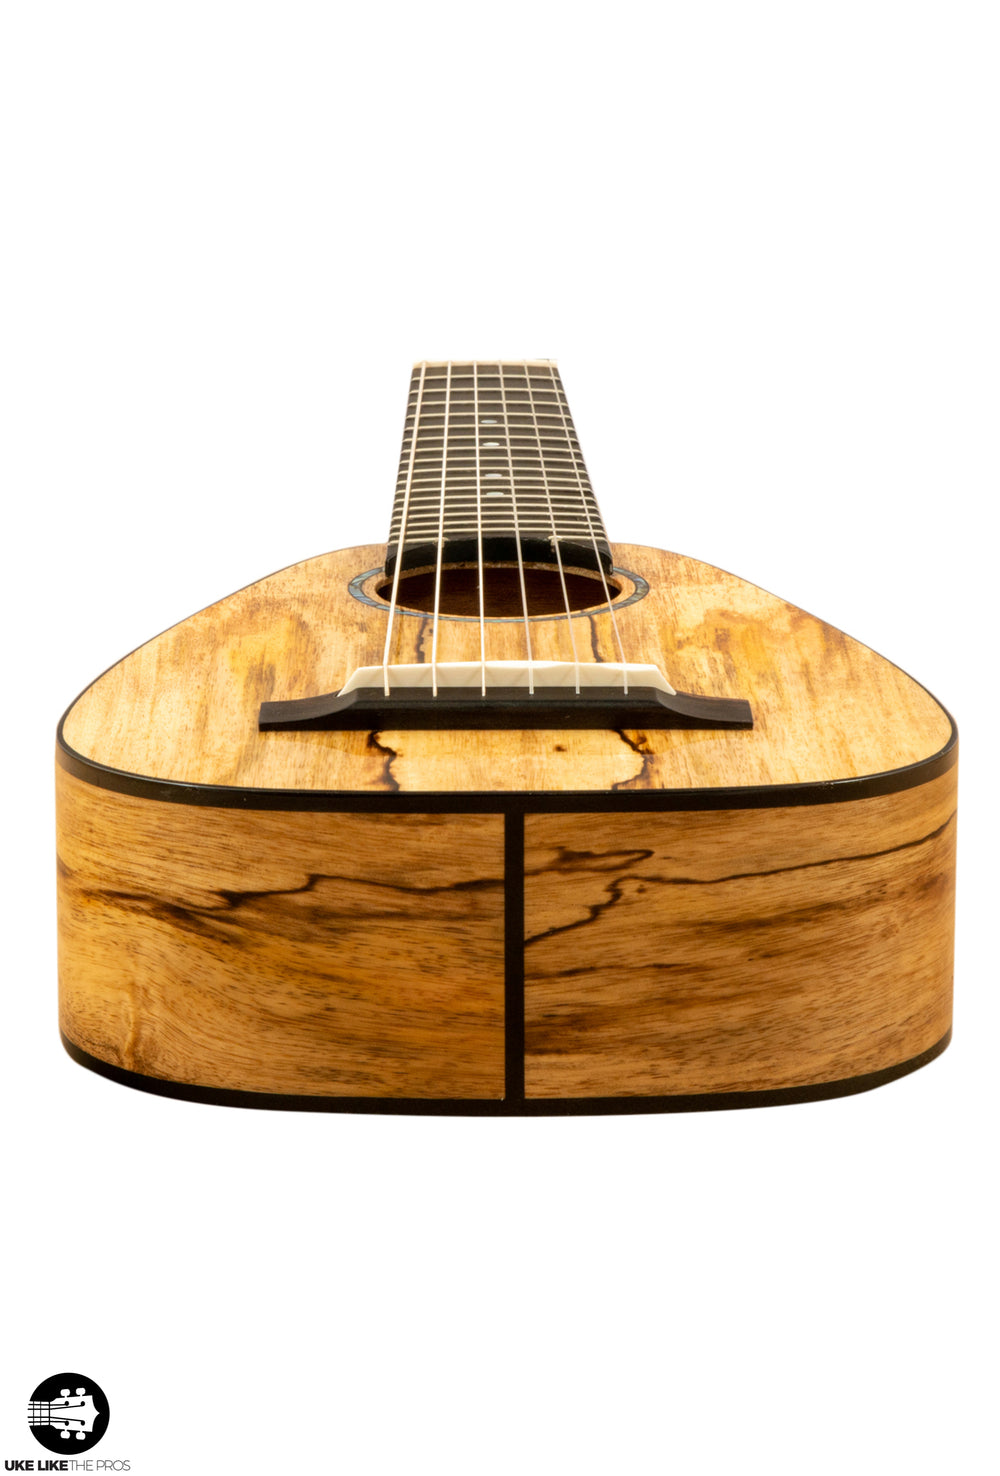 "Romero Creations 6 String Guilele Spalted Mango RC-TT6-MG ""Norwich"""